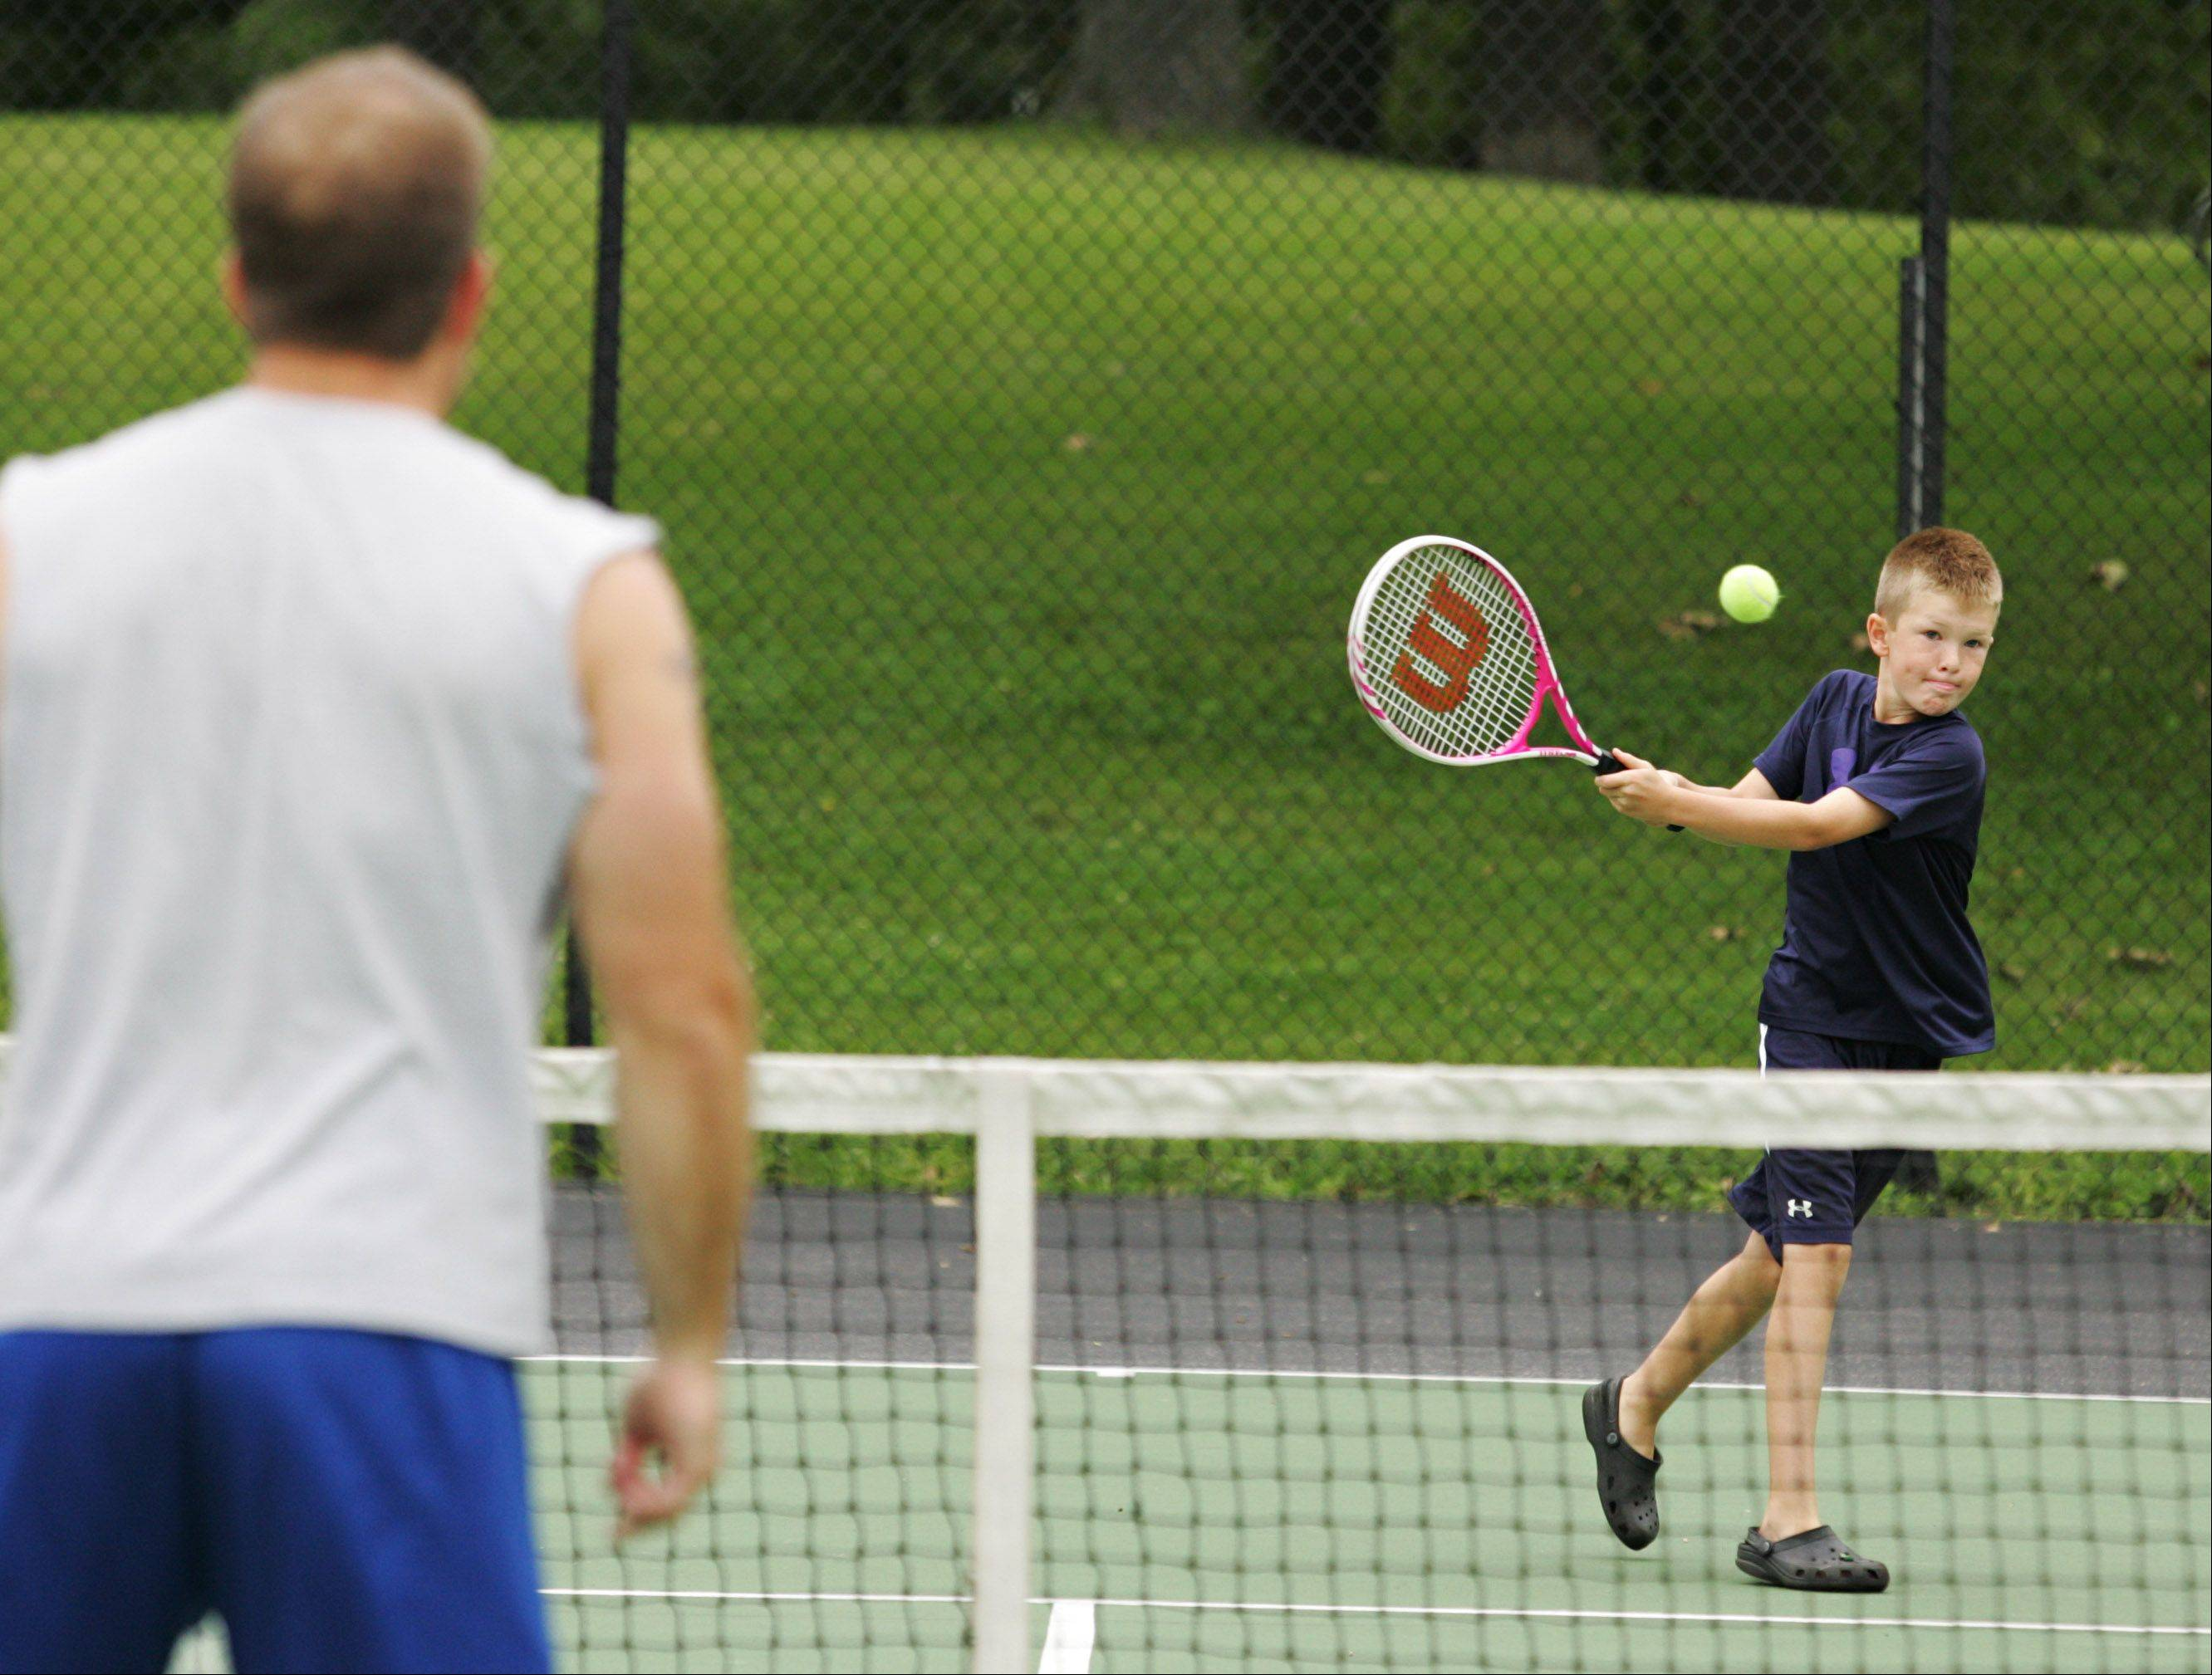 Matthew Wrzala, 10, hits a backhand to his dad, Keith as they play tennis at Ralph Seyller Park Monday morning in Hampshire. Matthew had asked to play tennis with his dad, so they got out to play before the wet weather arrived later in the day.